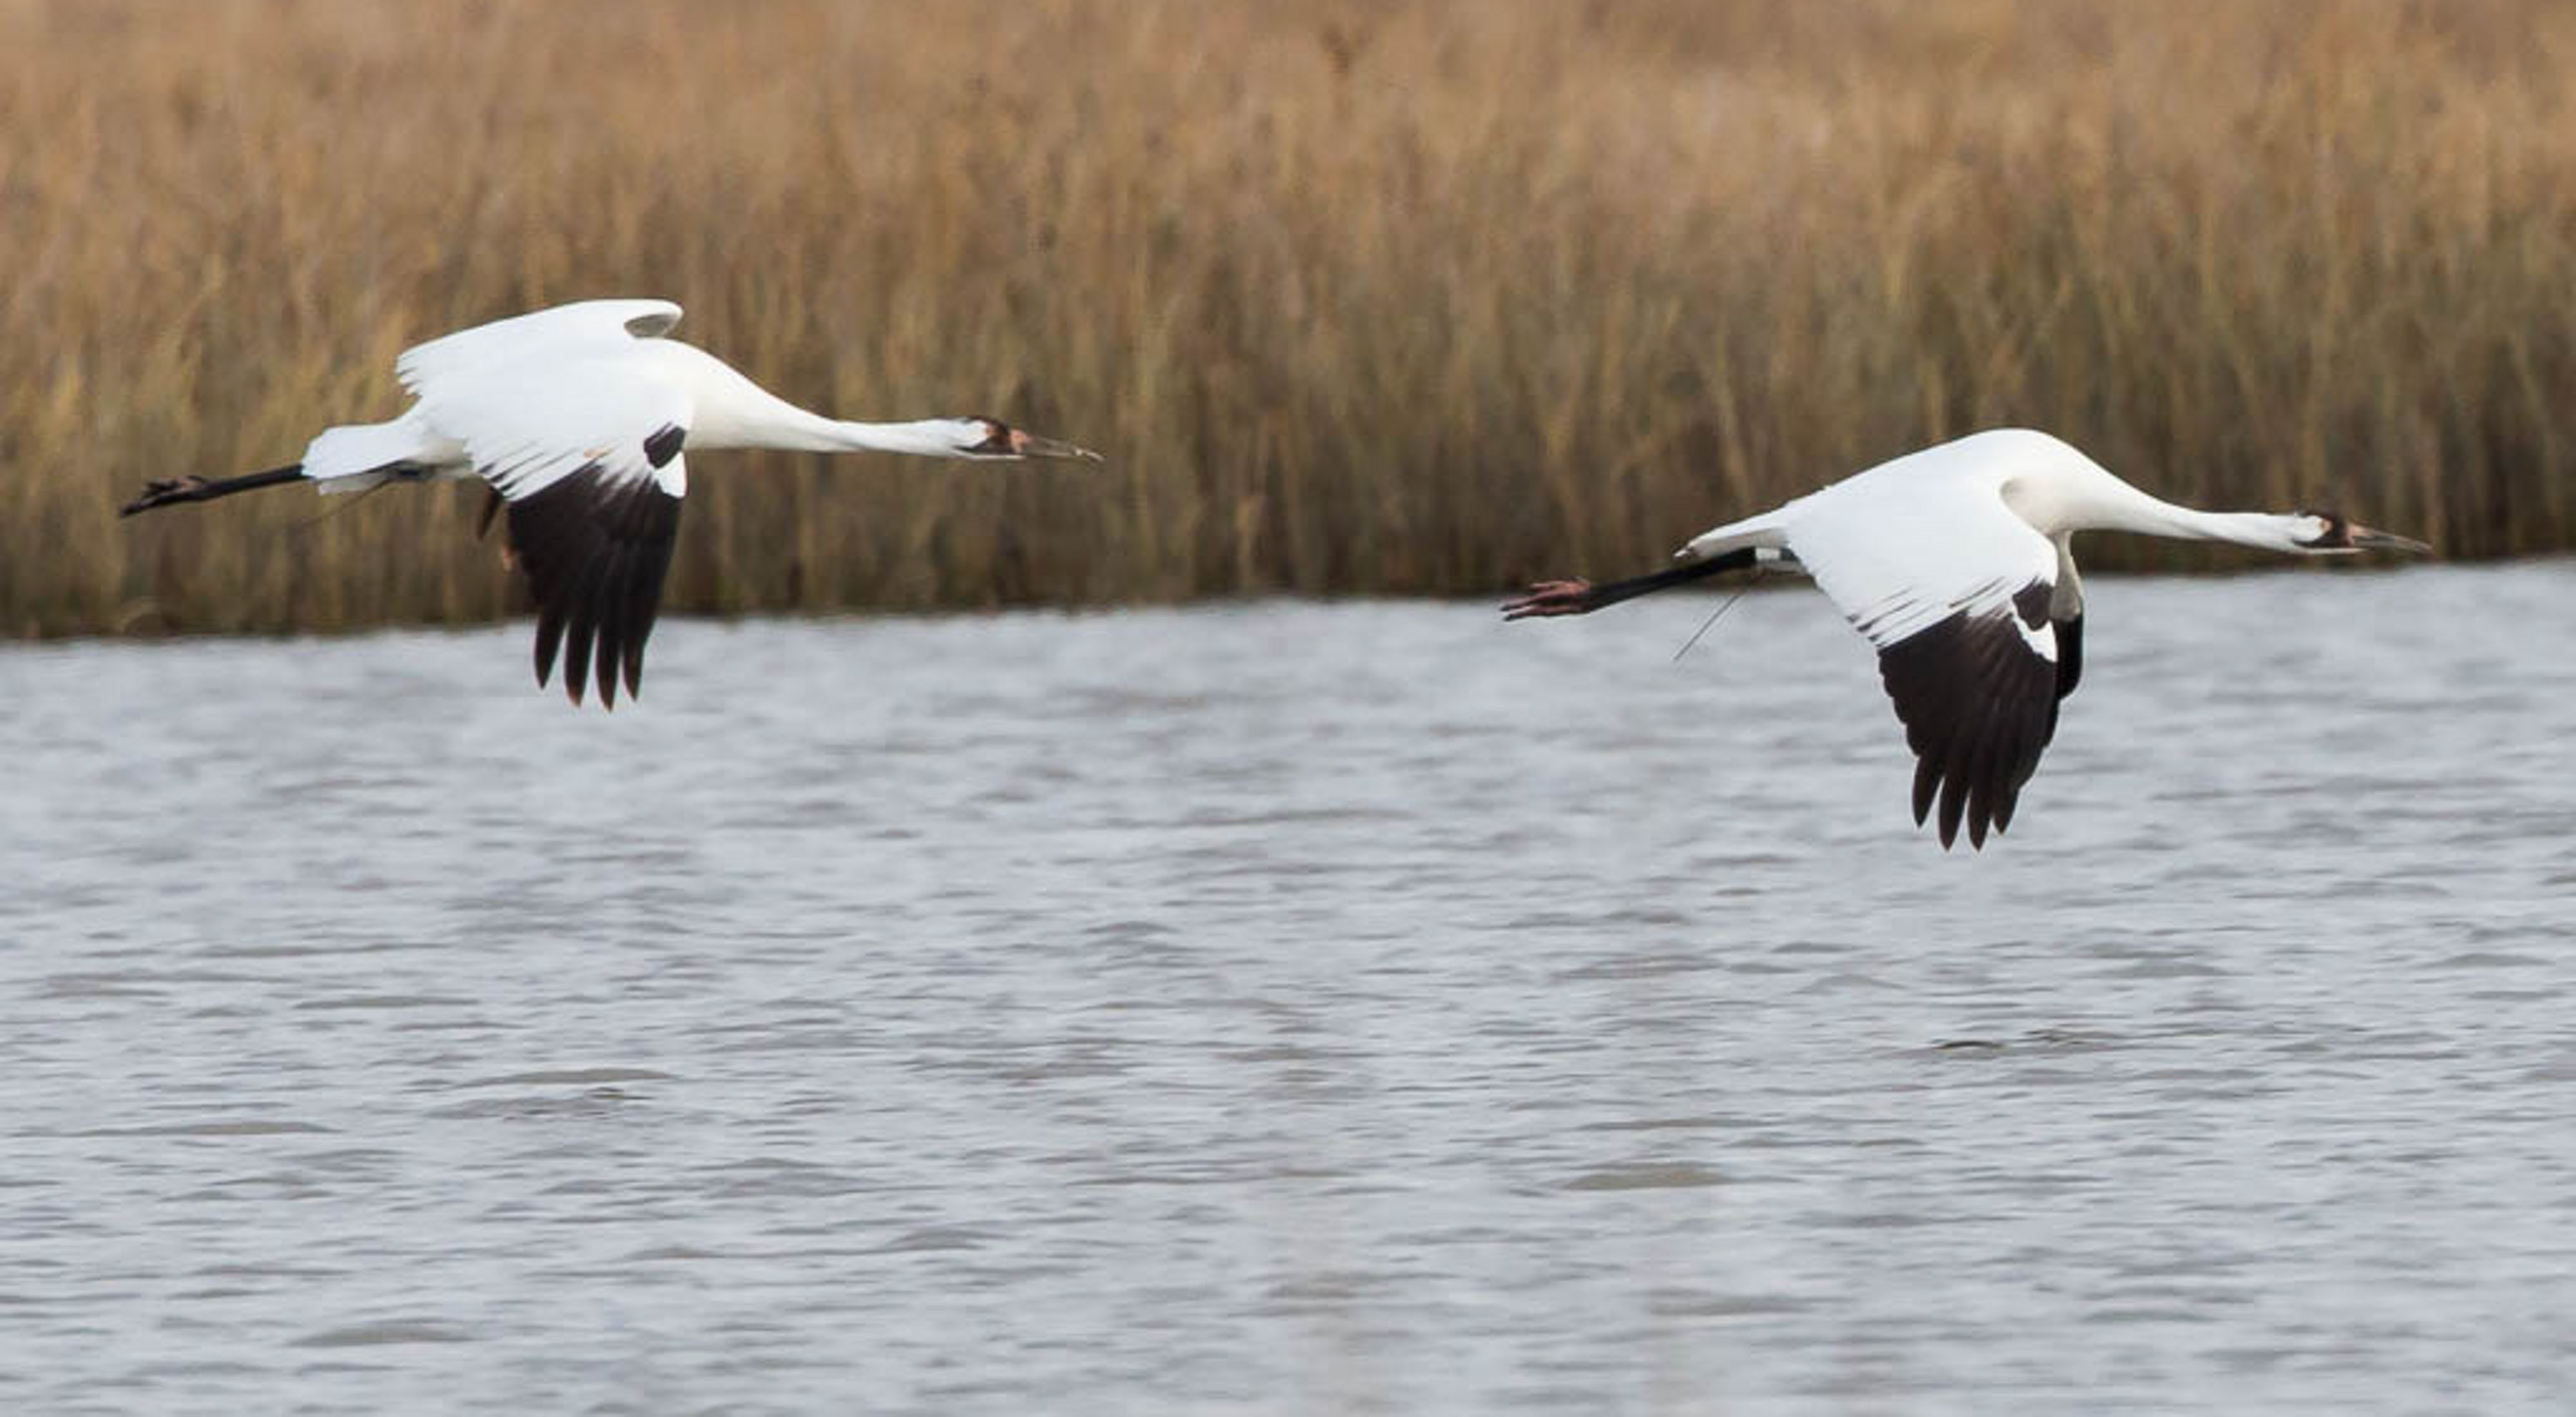 Two white and black whooping cranes mid-flight over a lake.